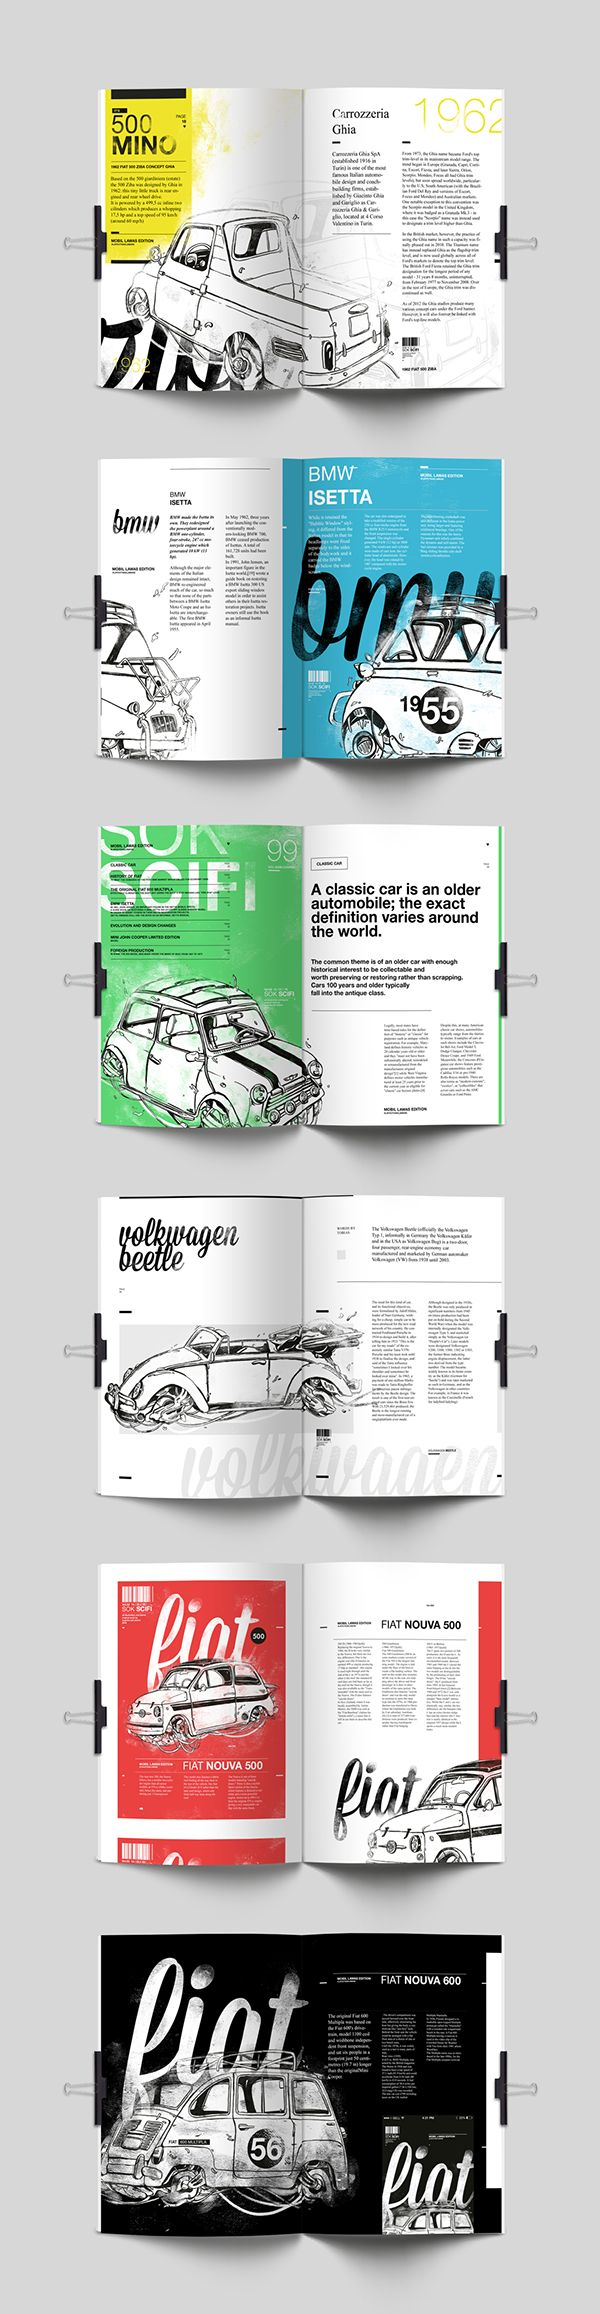 Sok Scifi Edition - #007 Check me on dribbble to see another shot dribbble.com/nugrahajatiutama #design #editorial #layout